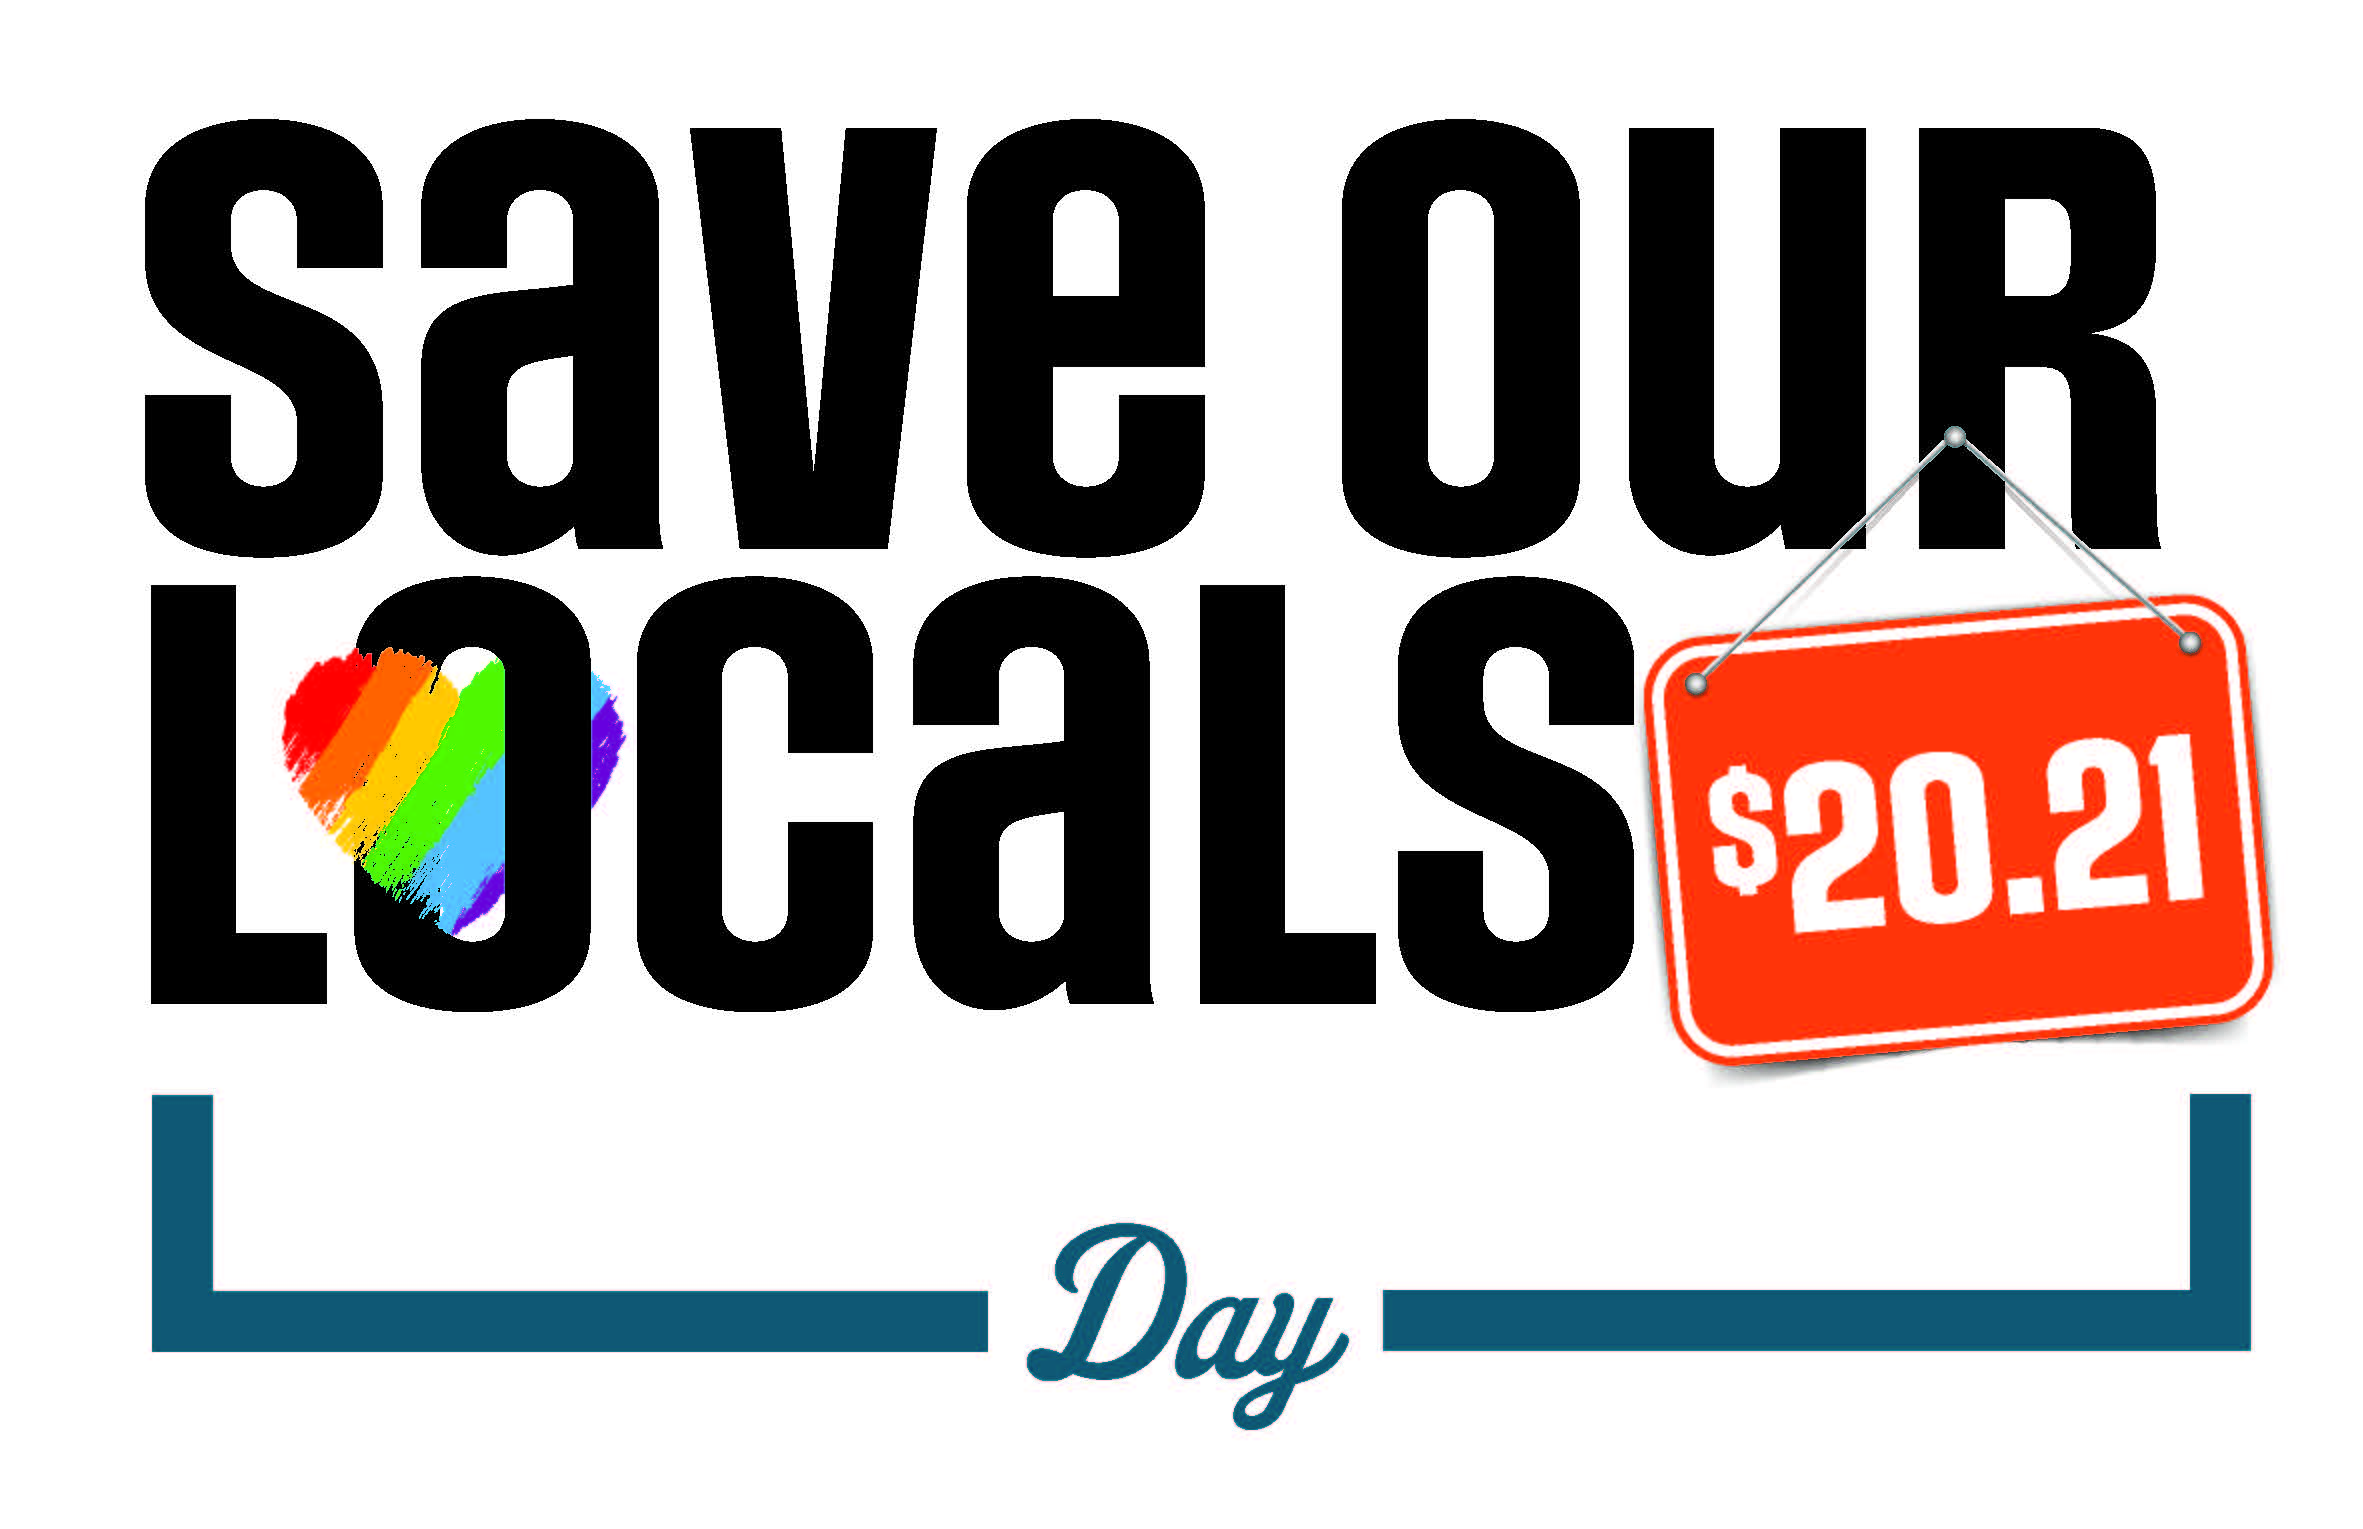 Save Our Locals 2021 Day